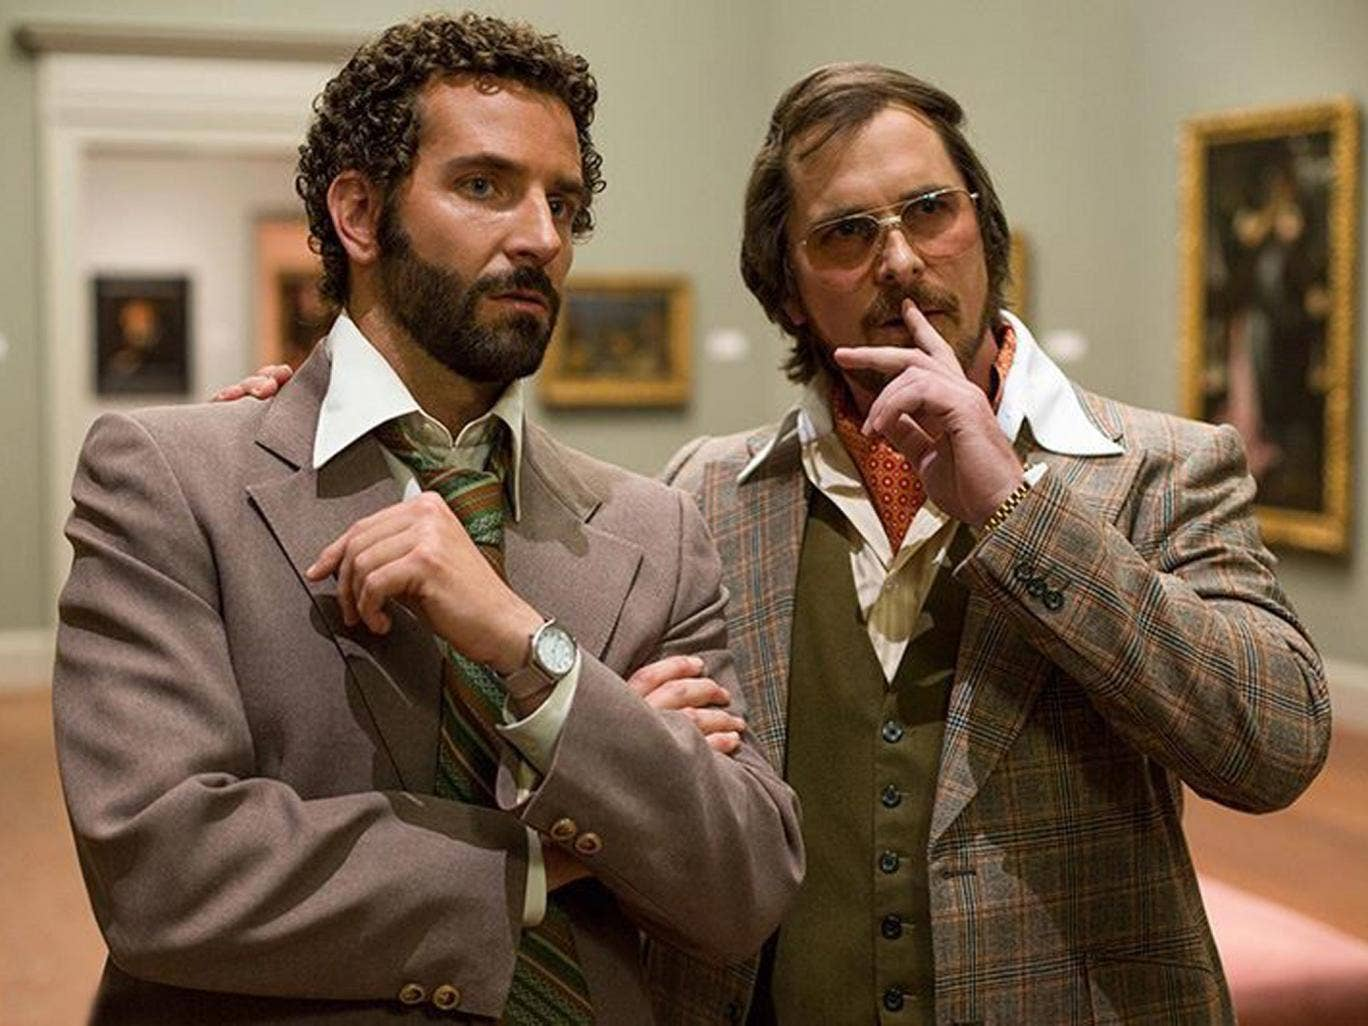 The film 'American Hustle' depicts a similar scheme